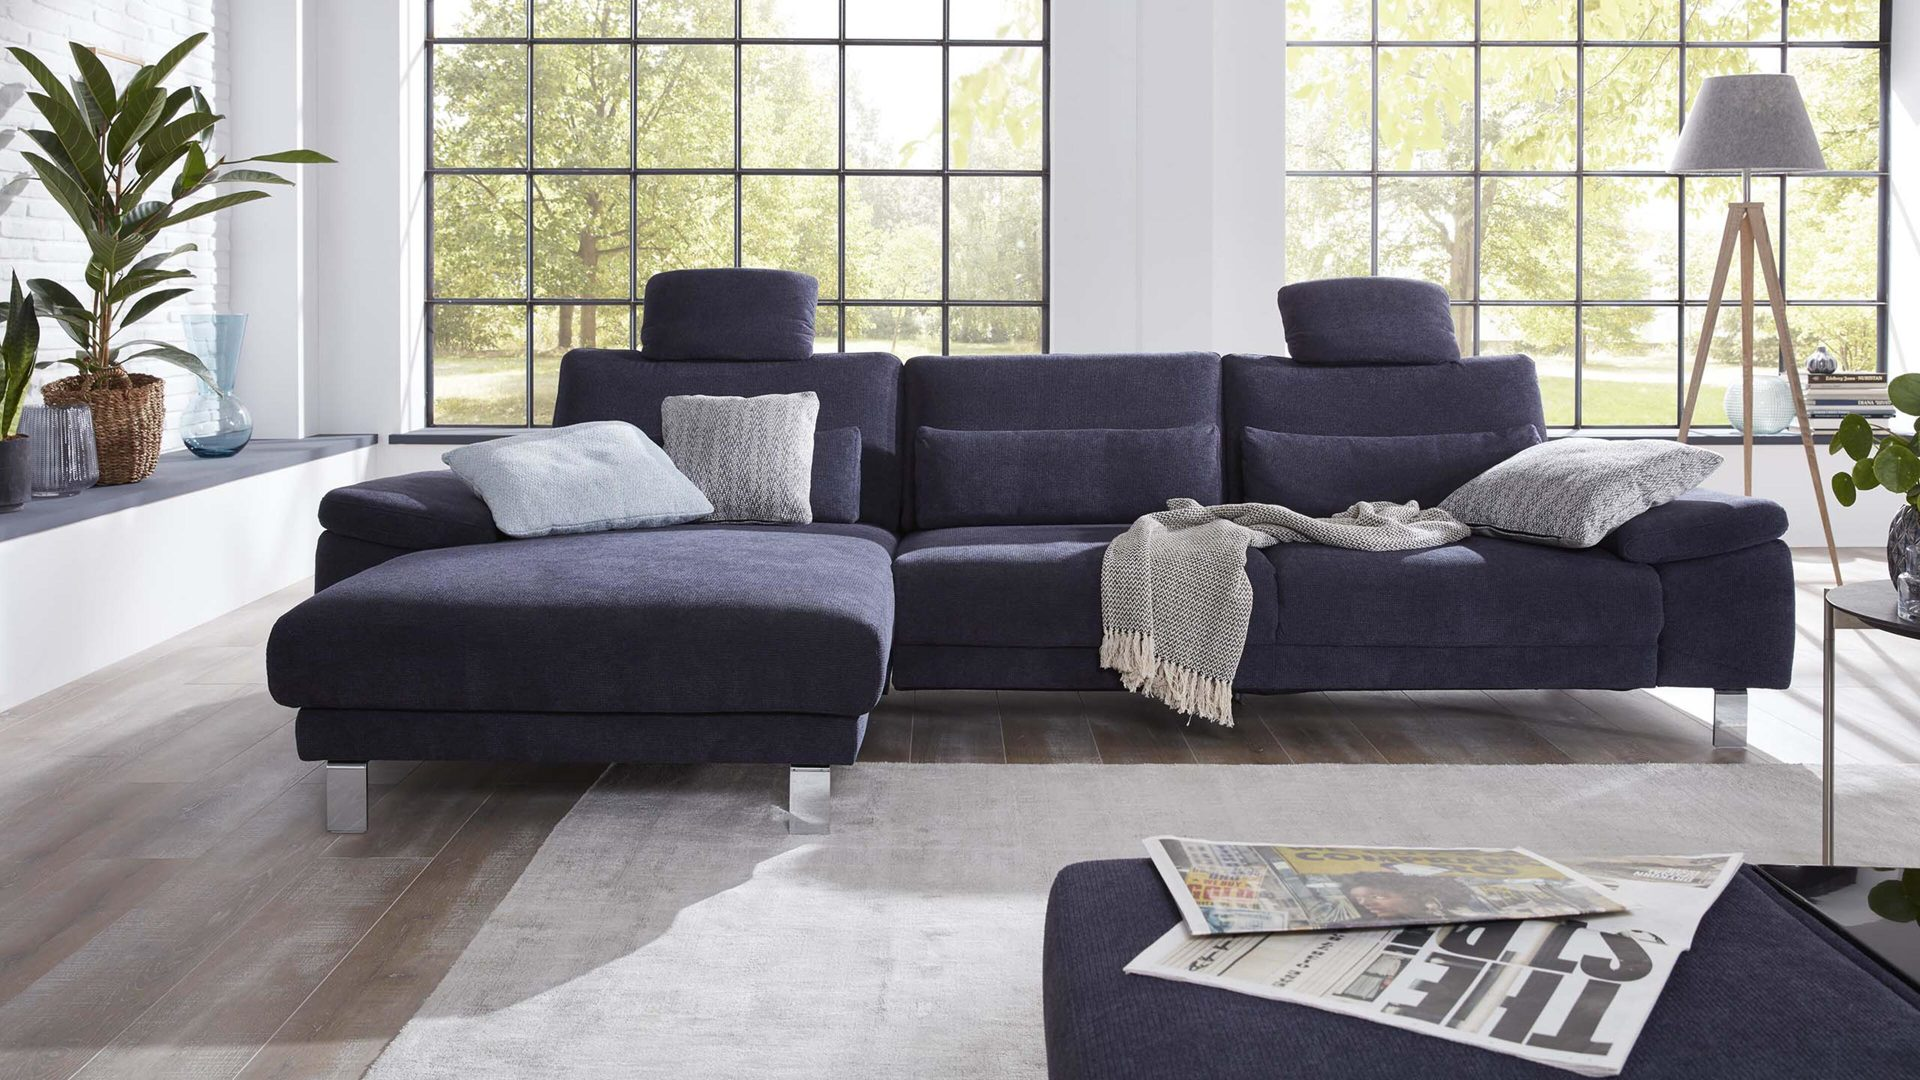 Interliving Sofa Serie 4301 Eckkombination Marineblauer Bezug